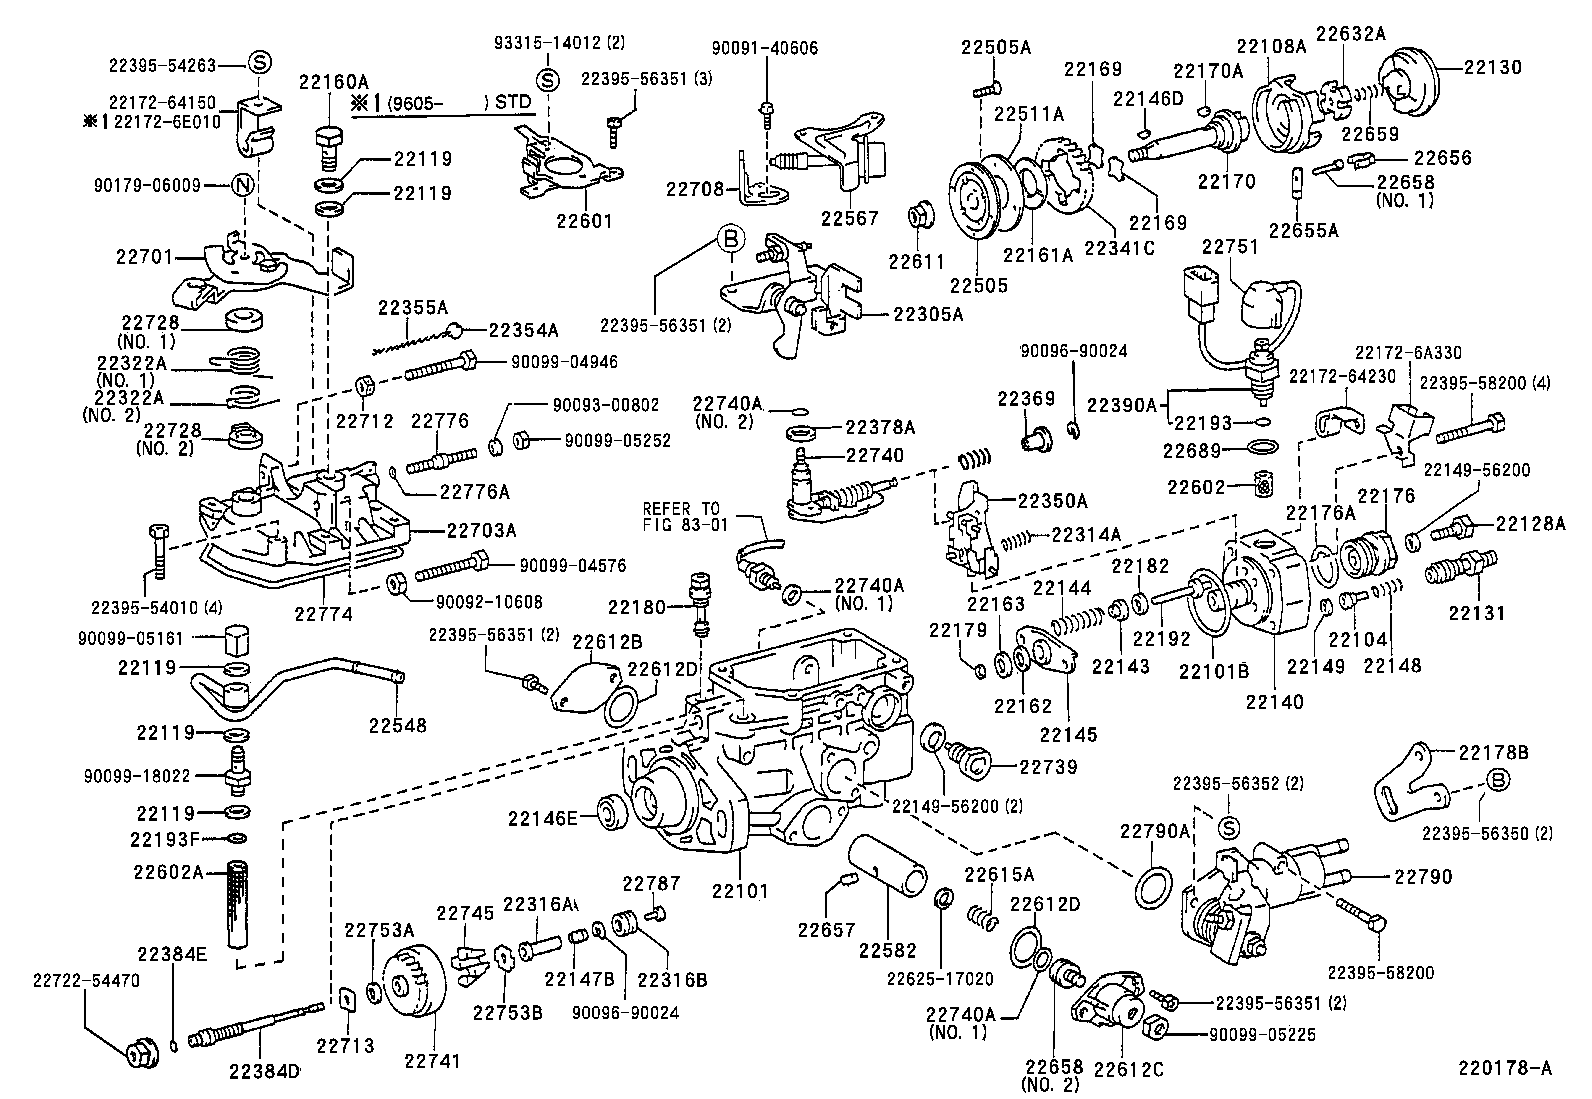 dodge fuel injector wiring diagram toyota corollace100r-agmdsw - tool-engine-fuel - injection ...